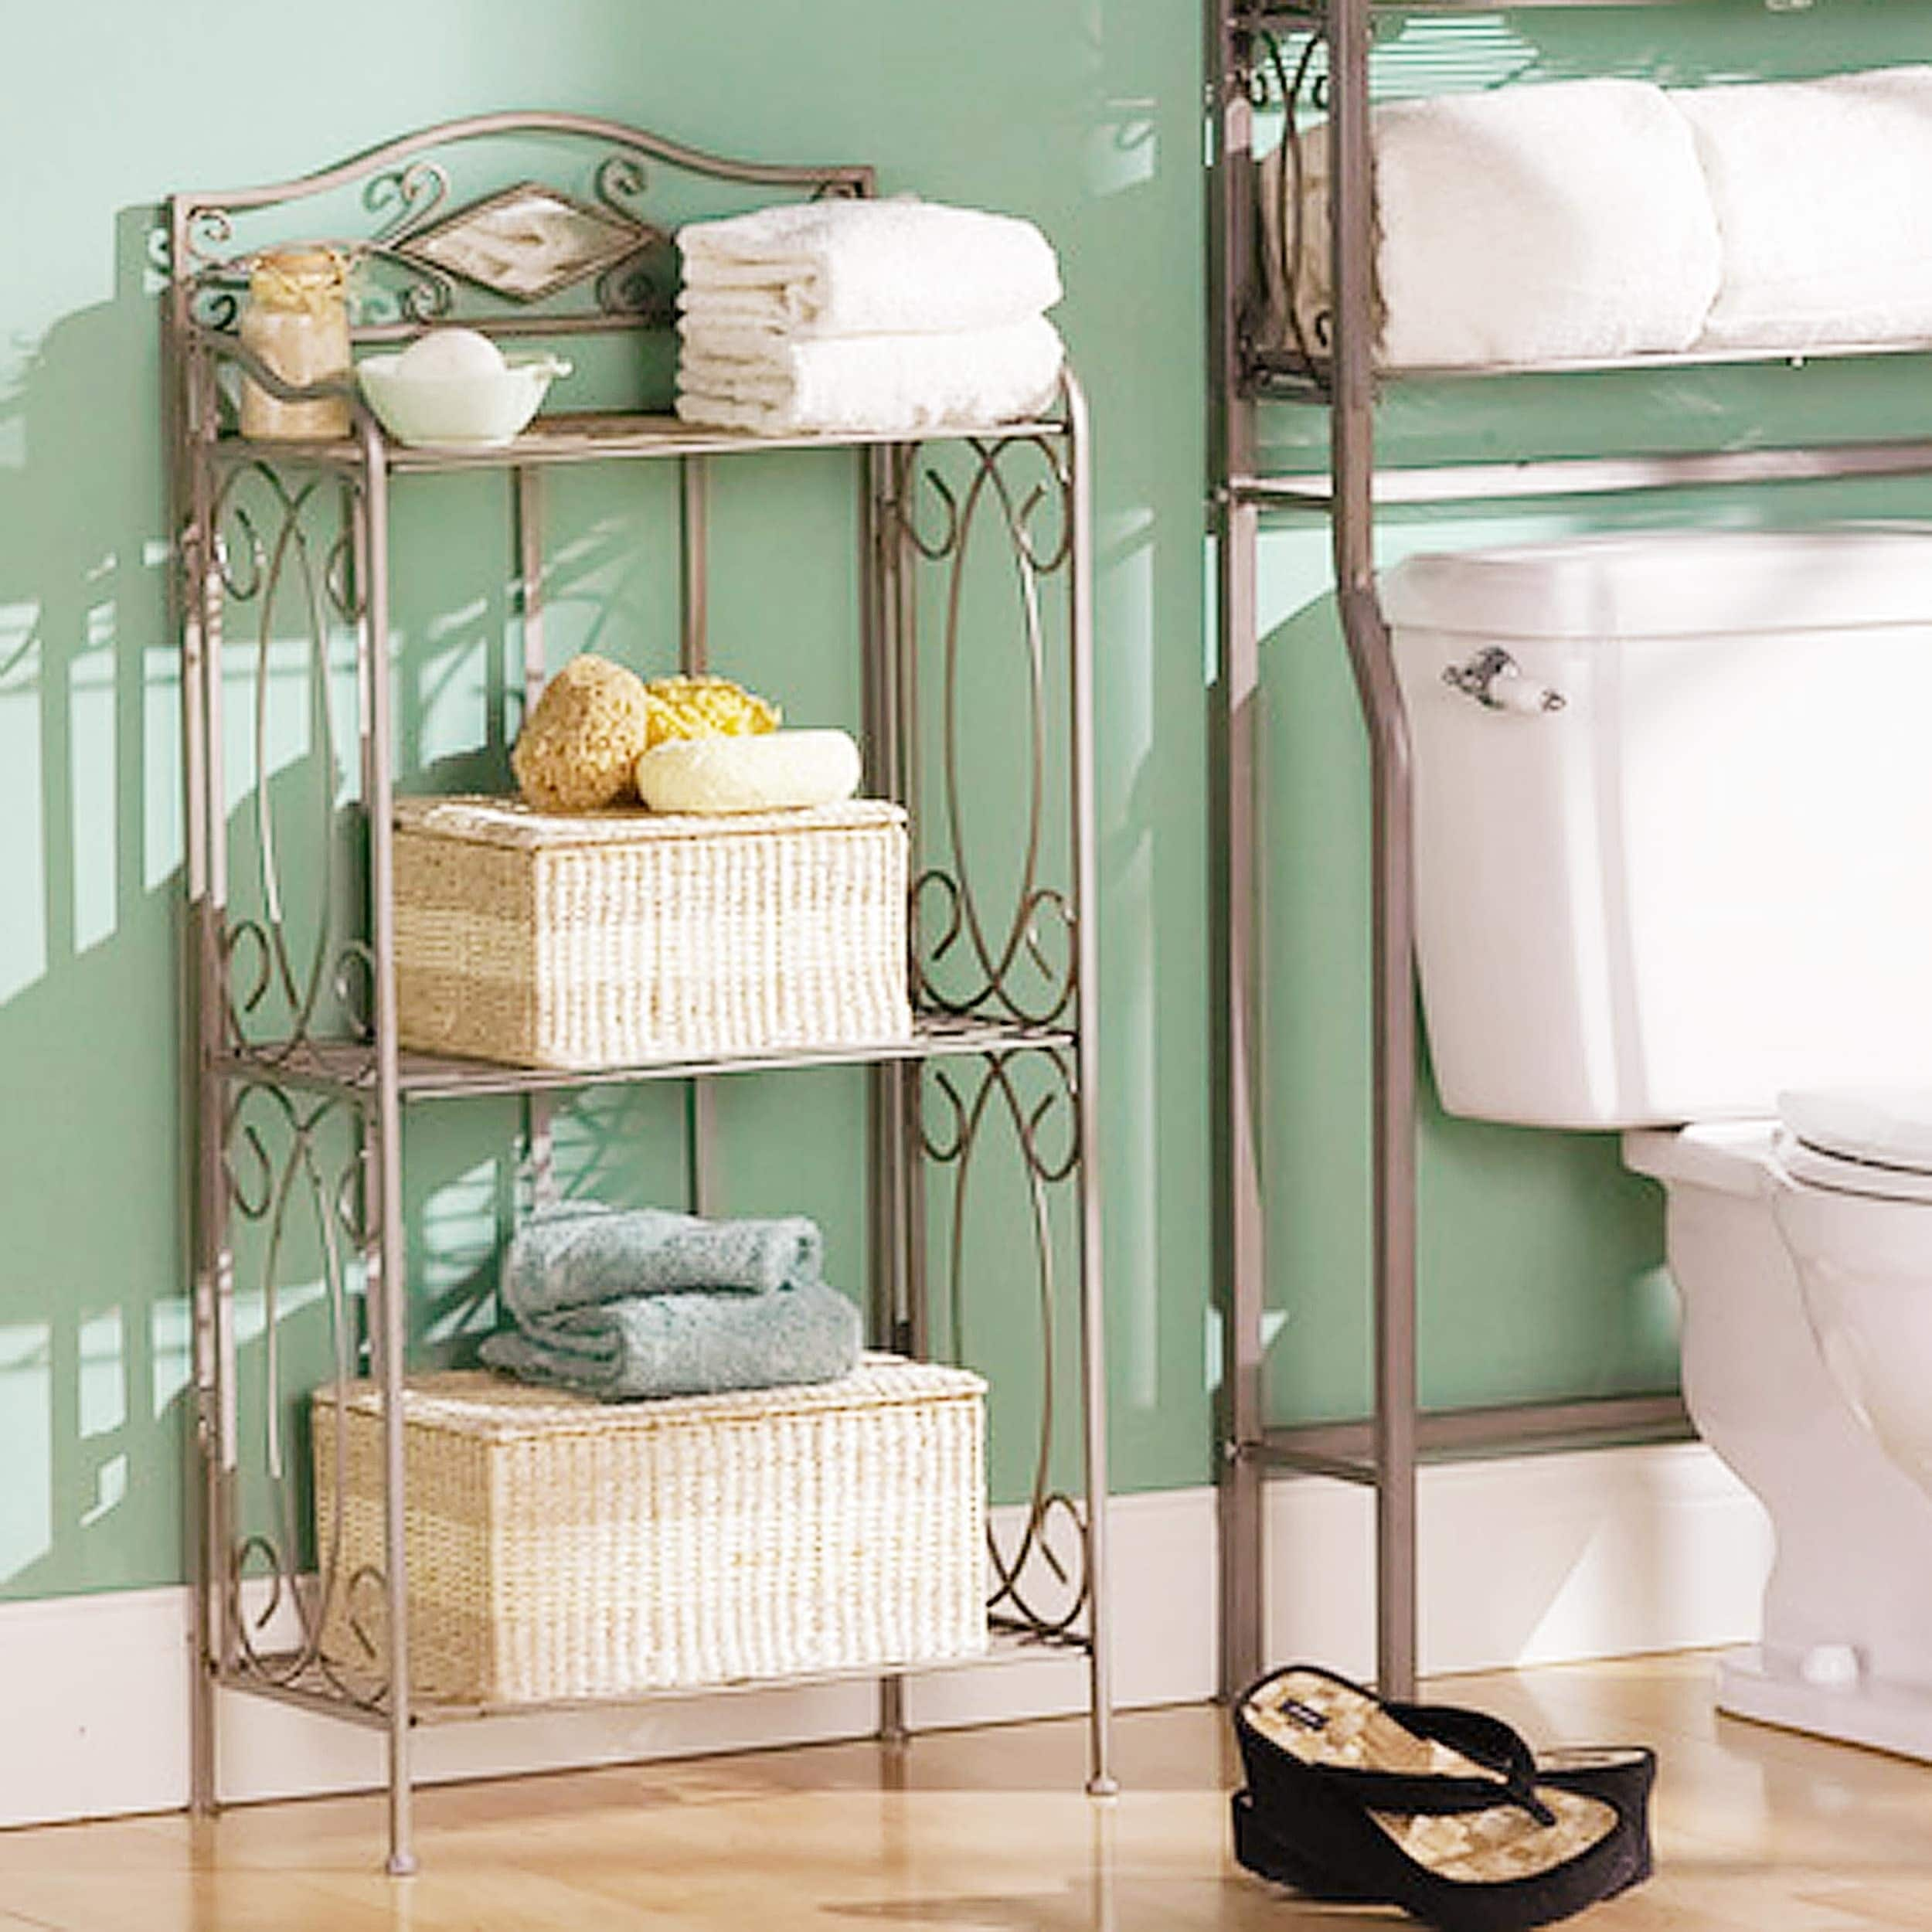 Shop Reflections 3-tier Metal Bathroom Storage Rack - On Sale - Free Shipping Today - Overstock.com - 2105629 : metal bathroom storage  - Aquiesqueretaro.Com